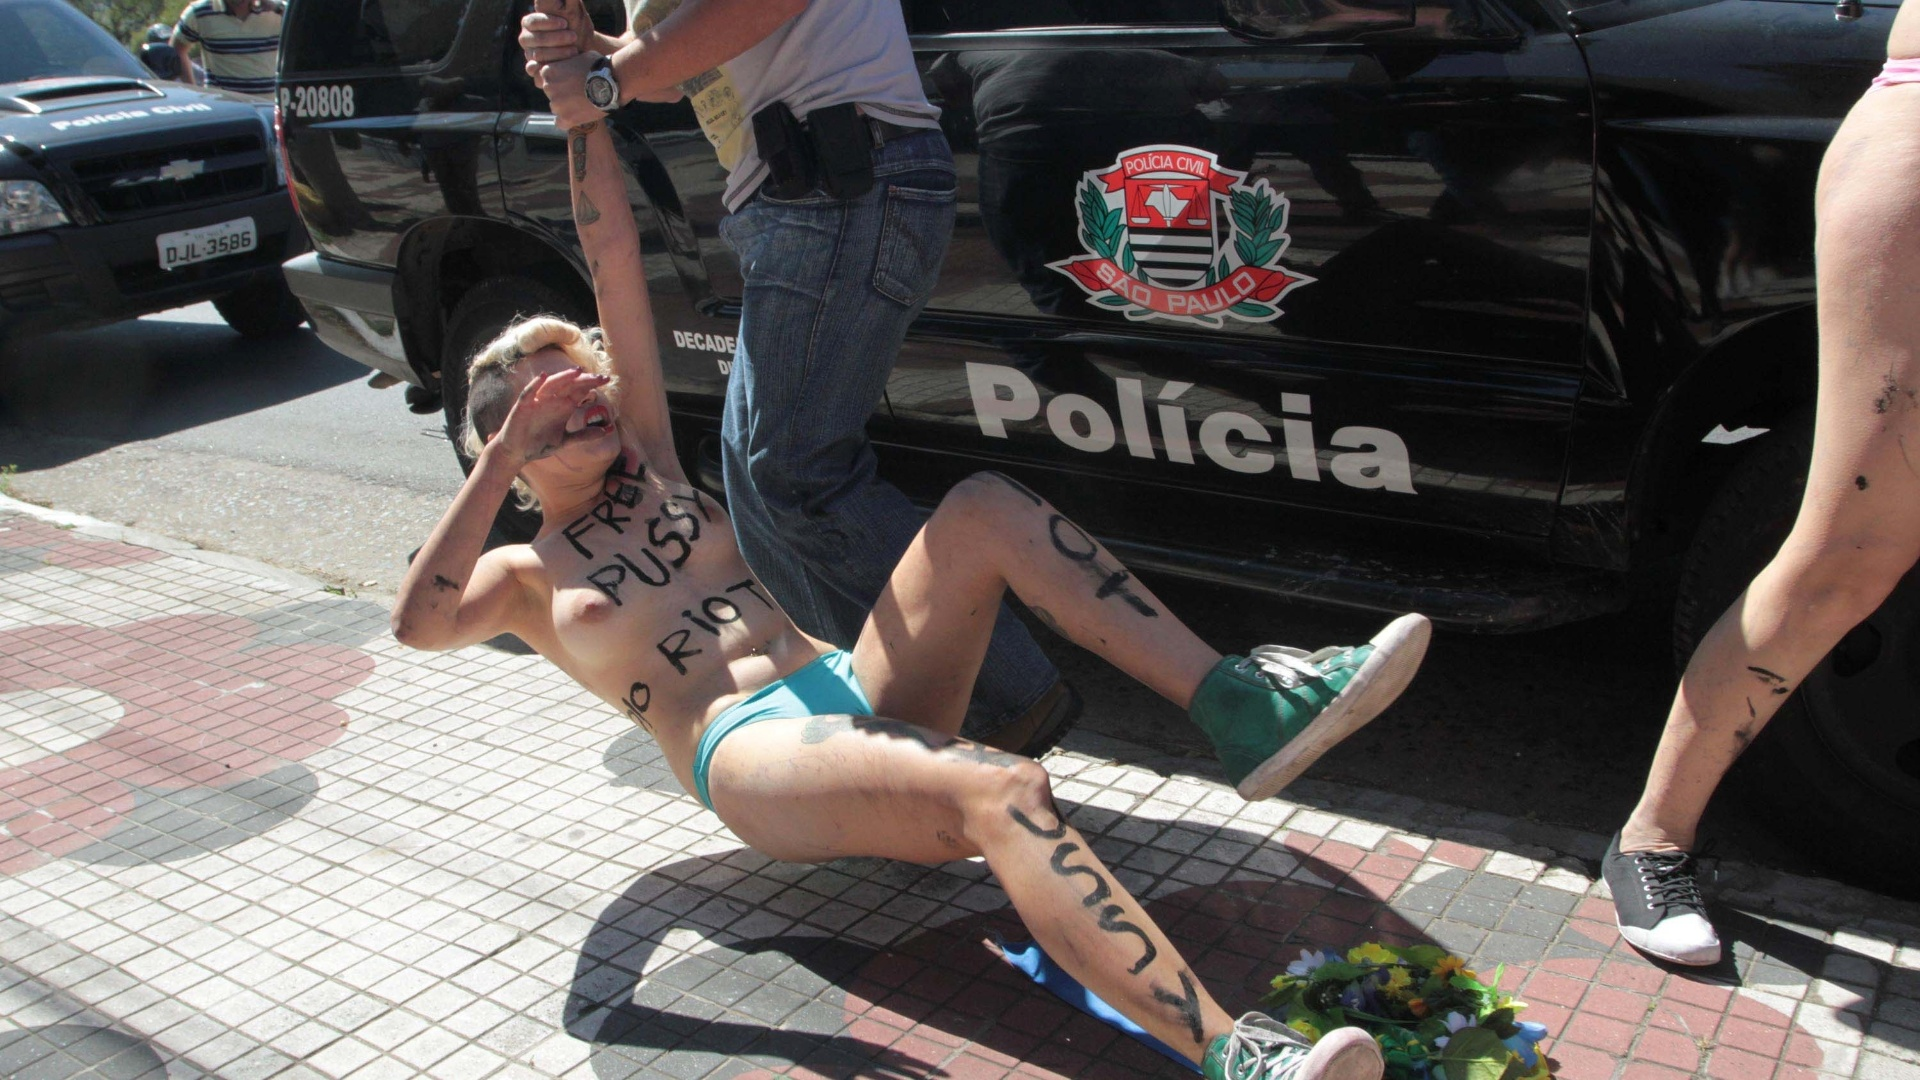 15.ago.2012 - Integrante do grupo Femen  arrastada por policial ao ser detida durante um protesto em prol da liberdade de trs integrantes da banda russa Pussy Riot, em frente ao consulado da Rssia, em So Paulo. As trs russas foram detidas devido a um protesto realizado em uma igreja, quando cantaram uma msica intitulada 